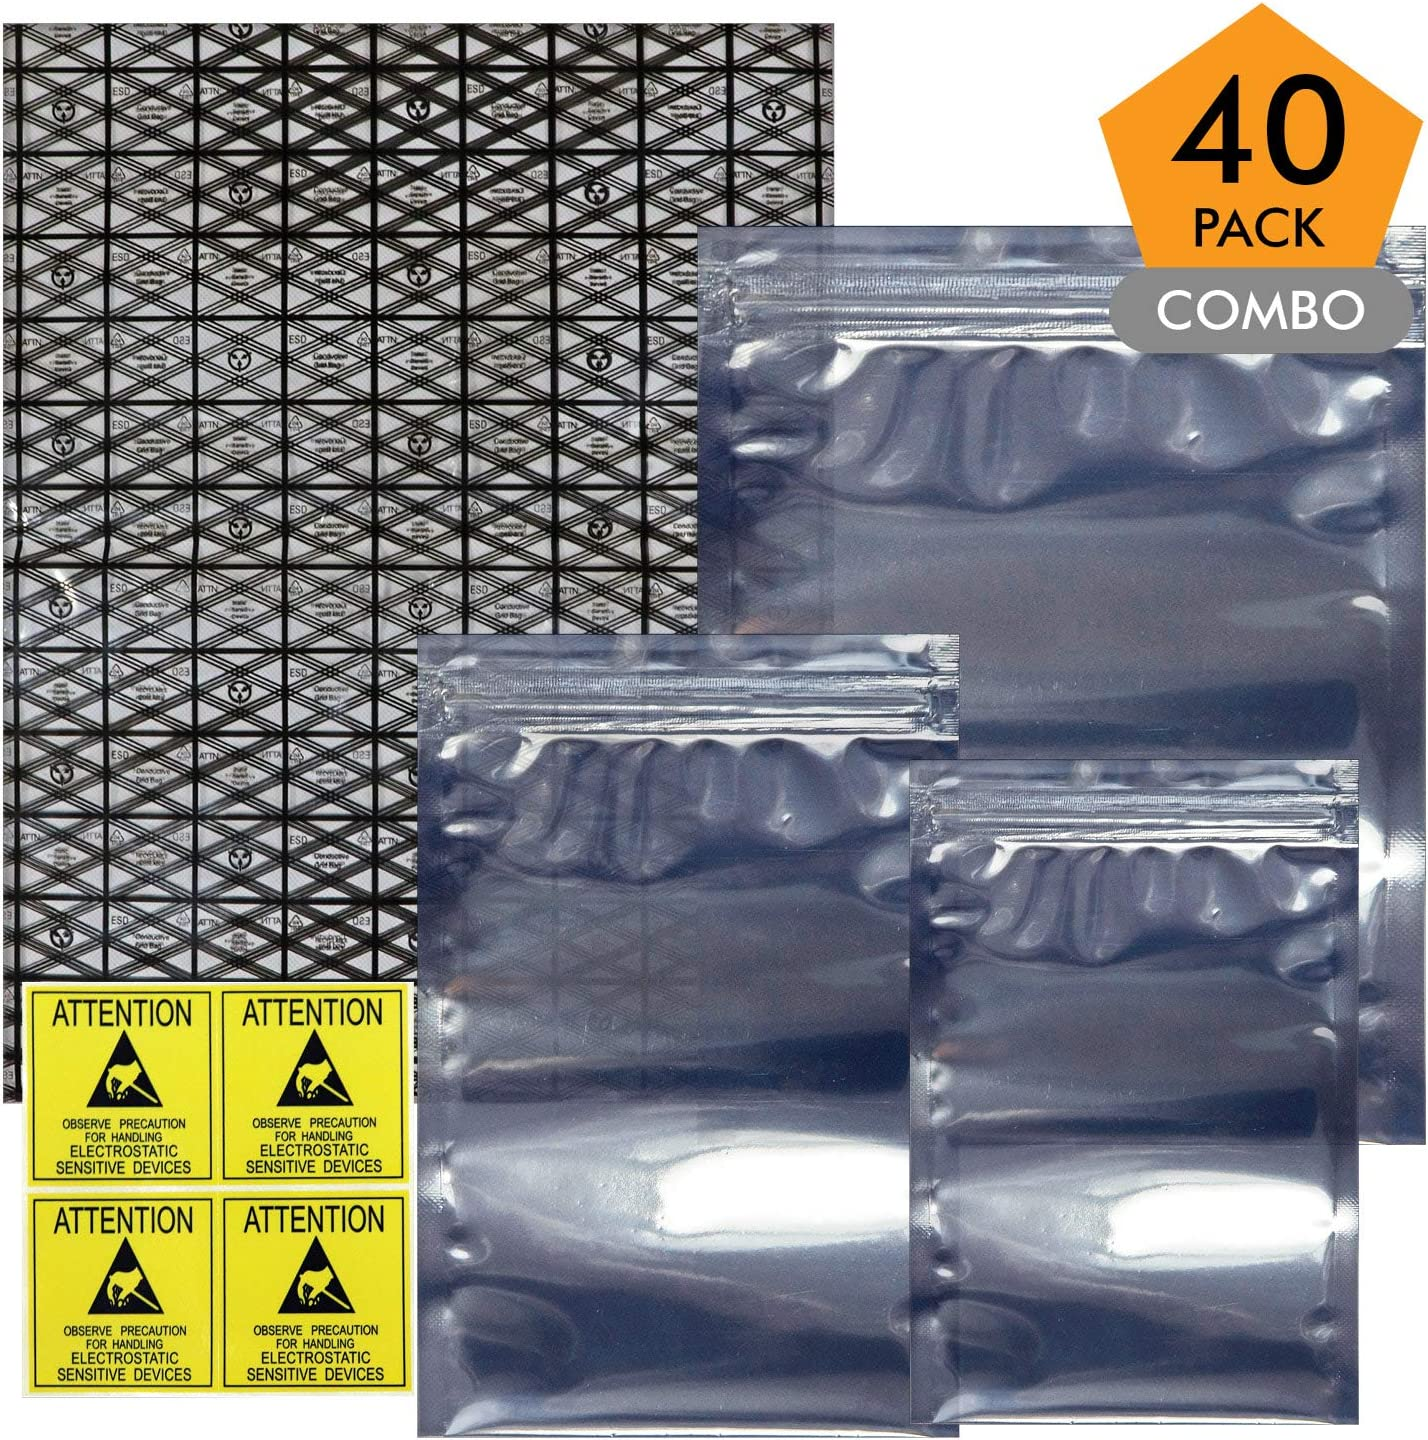 Open Top & Resealable Antistatic Bags ESD Shielding Bag with Anti-static Labels for Hard Drive SSD HDD Motherboard Video Card RAM Electronic Devices (Pack of 40) (Assorted Sizes)